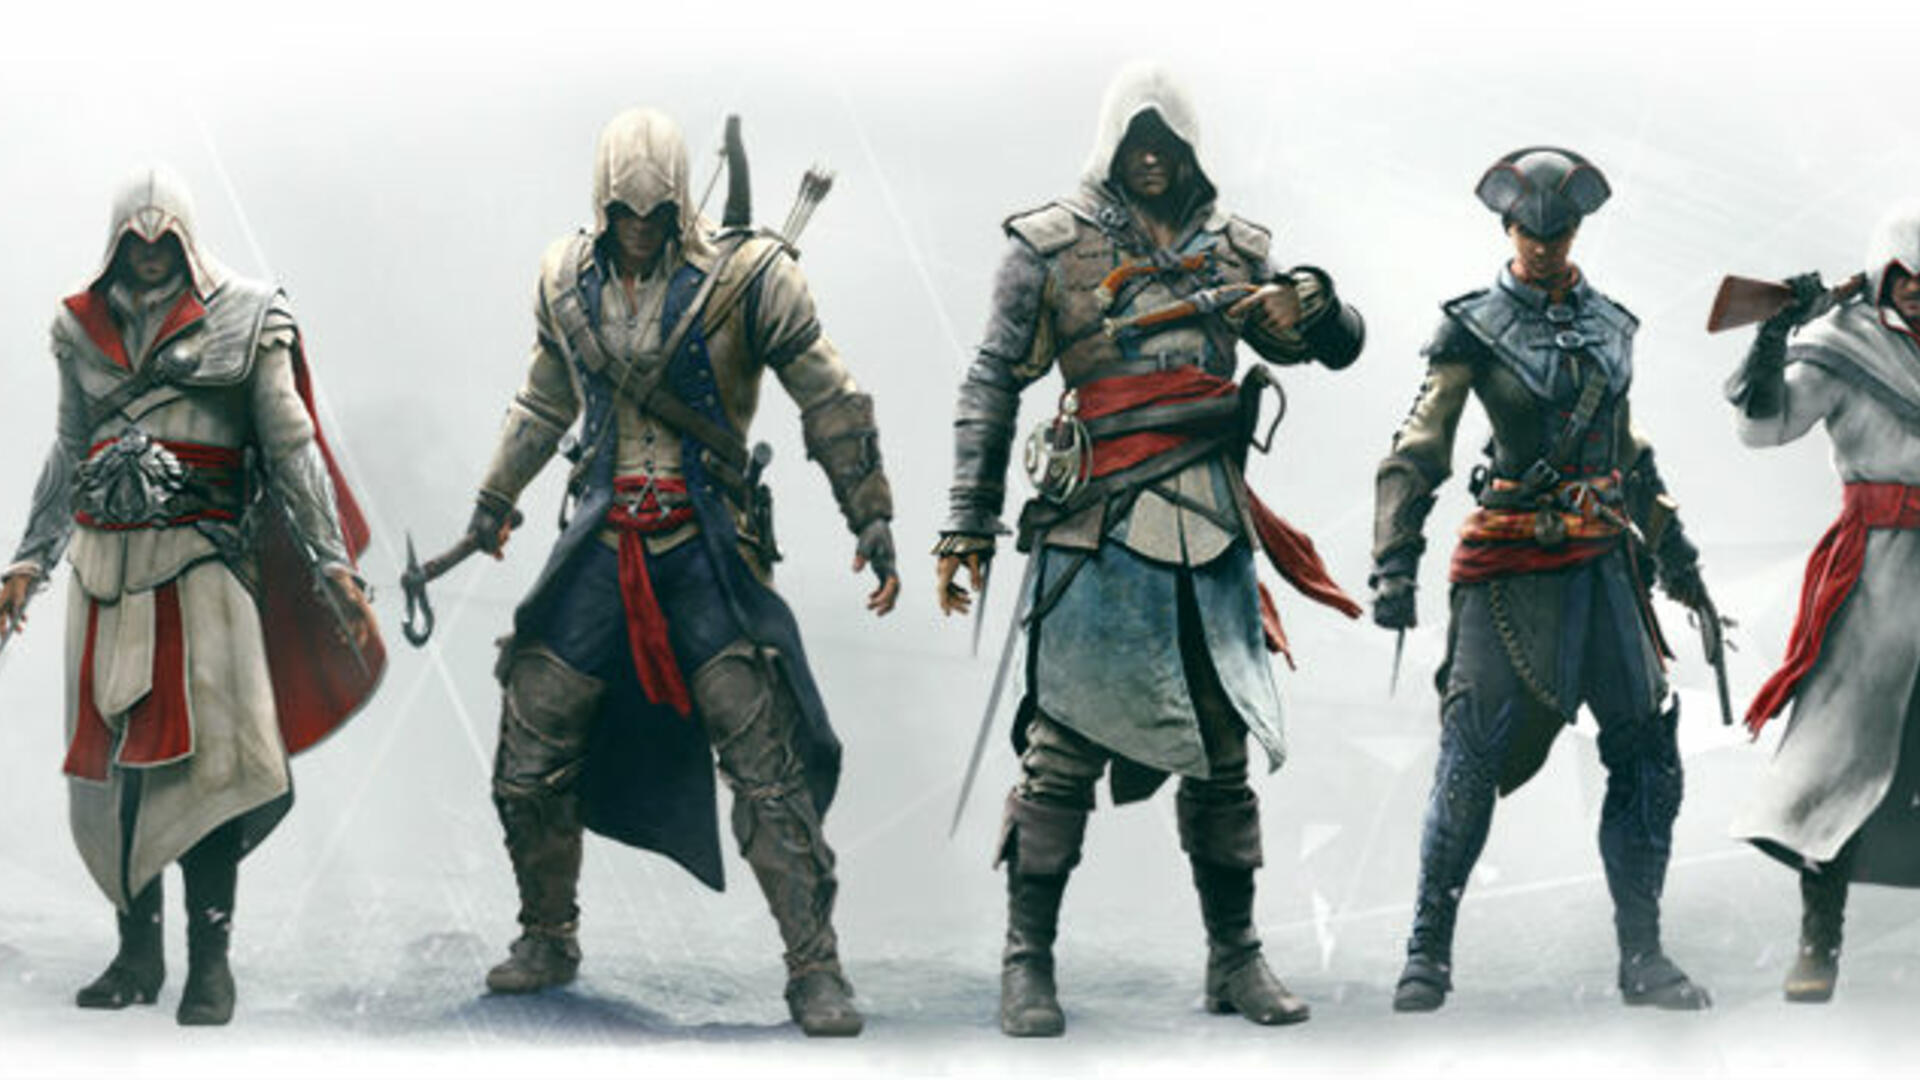 What's Next for Assassin's Creed? Signs Point to Russia, Not Feudal Japan